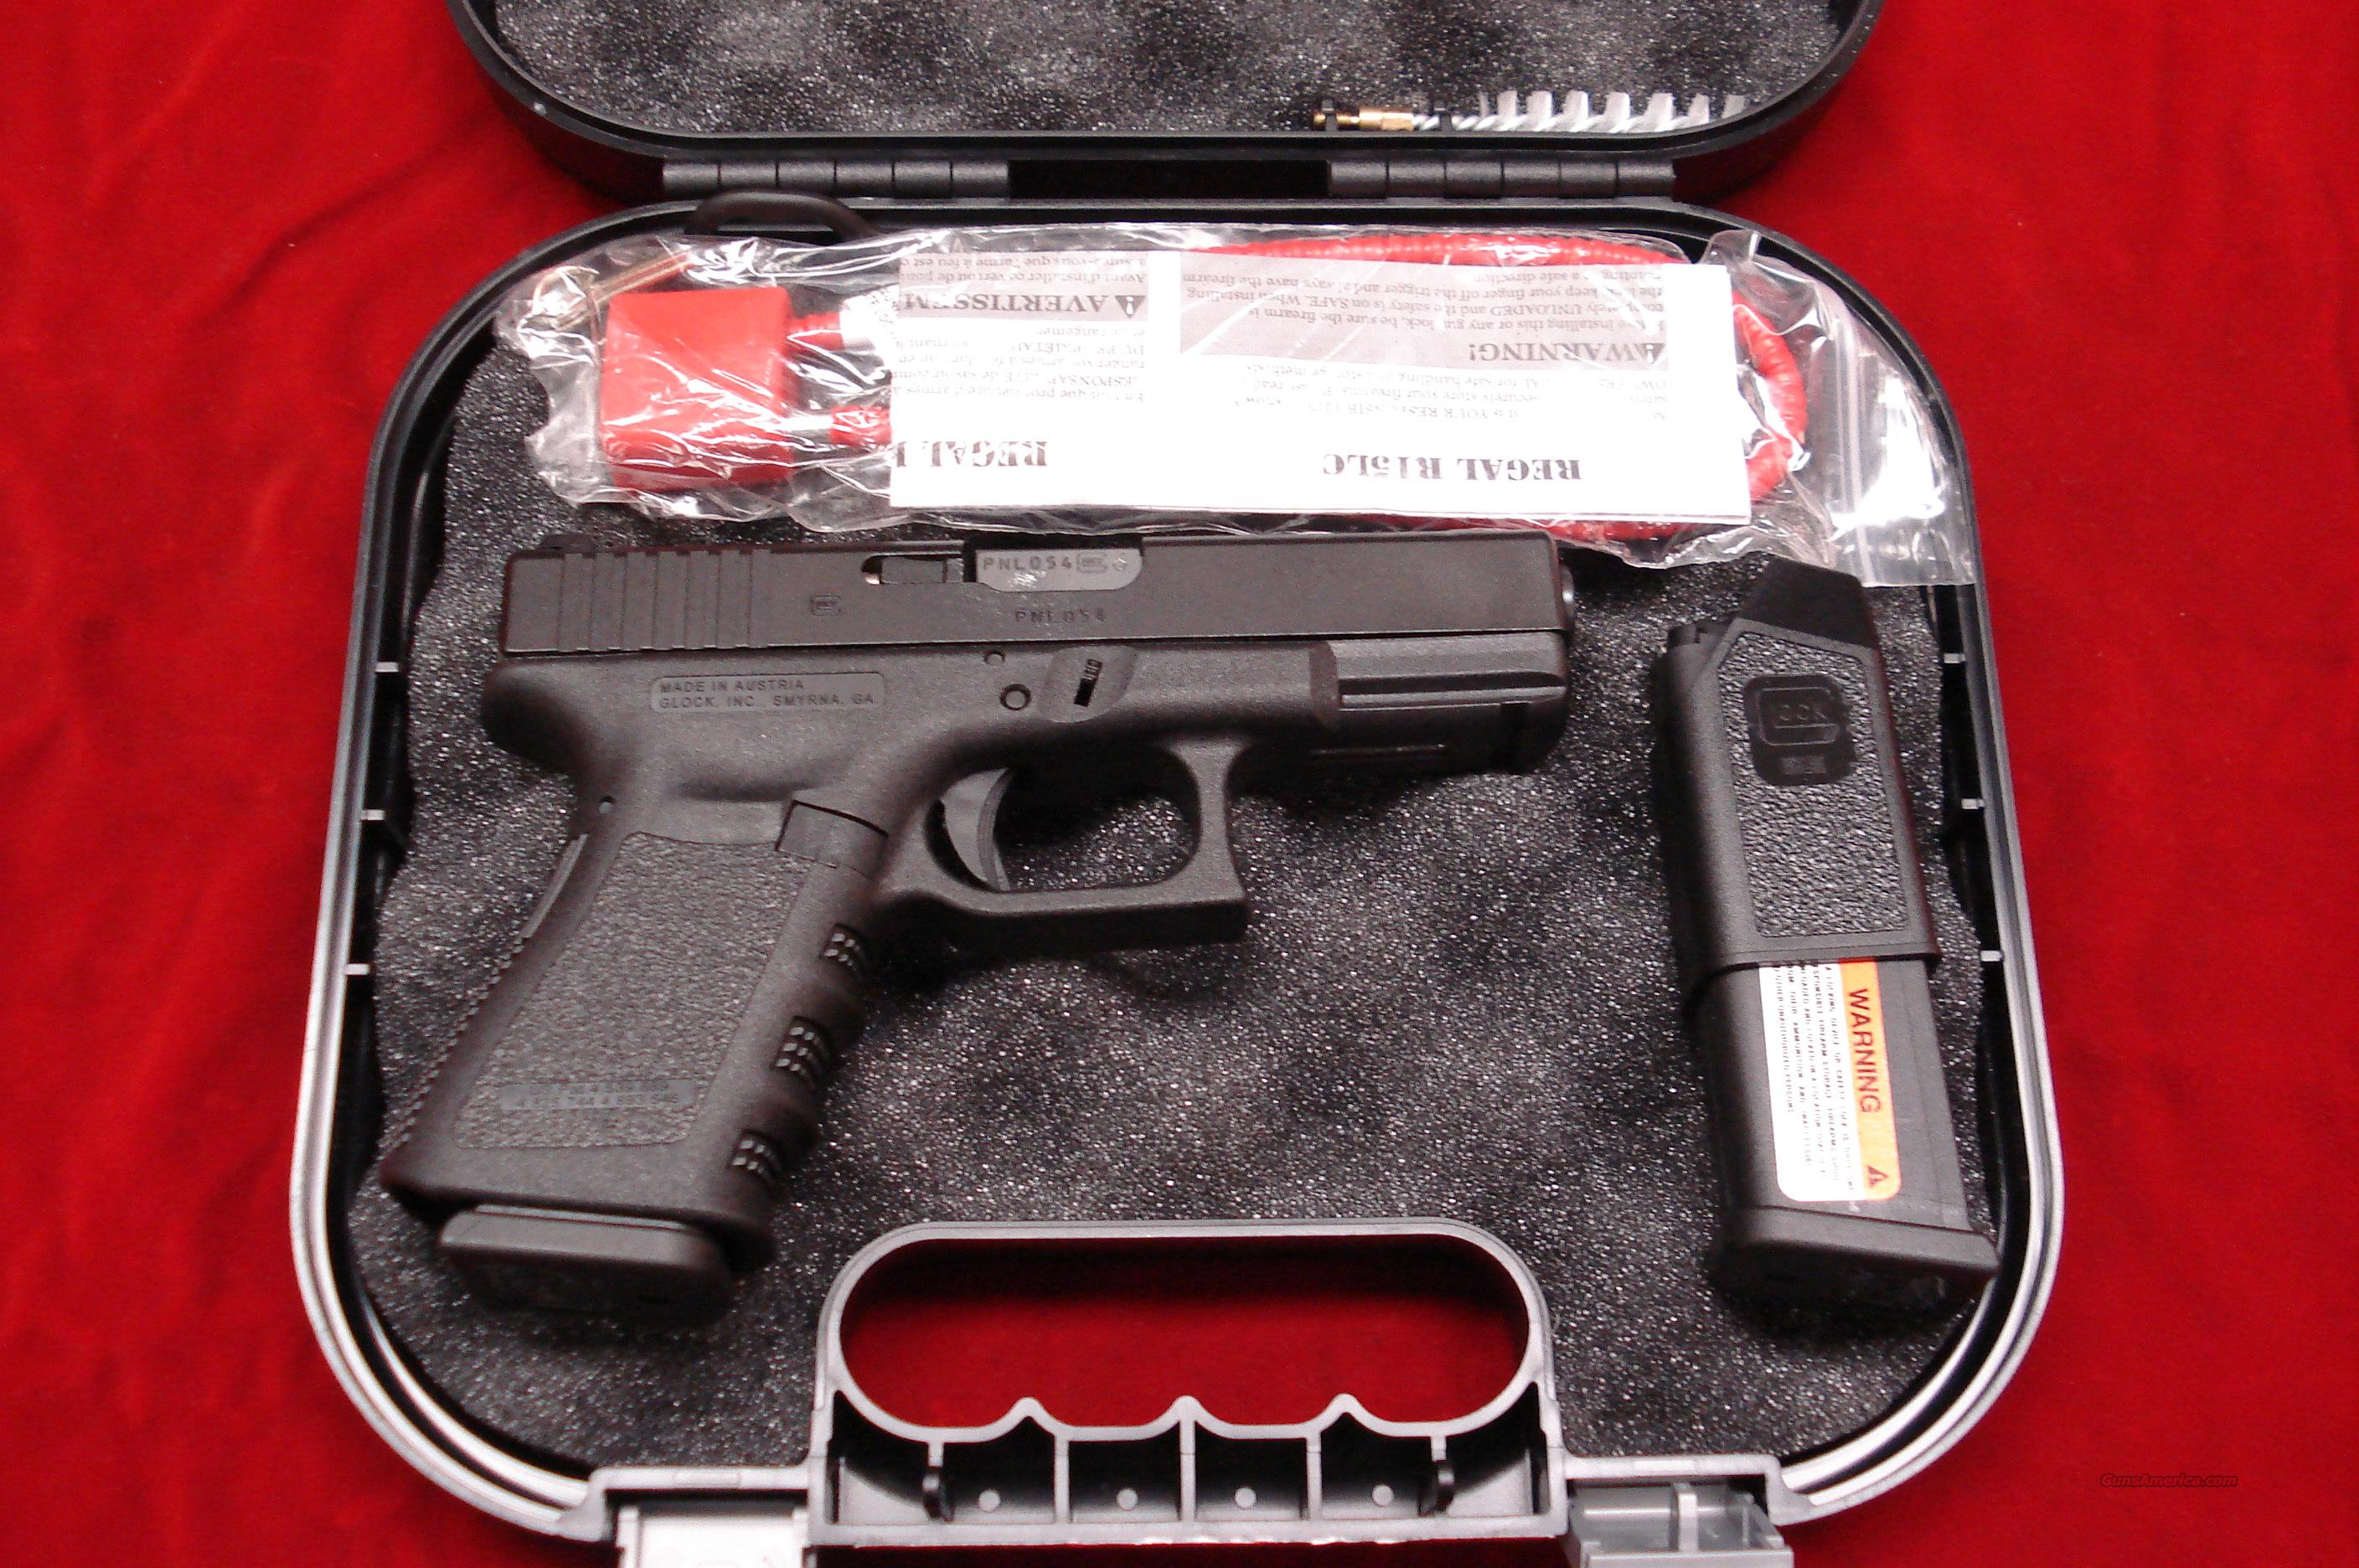 GLOCK MODEL 23 .40 CAL WITH NIGHT SIGHTS AND  HIGH CAPACITY MAGAZINES NEW  Guns > Pistols > Glock Pistols > 23